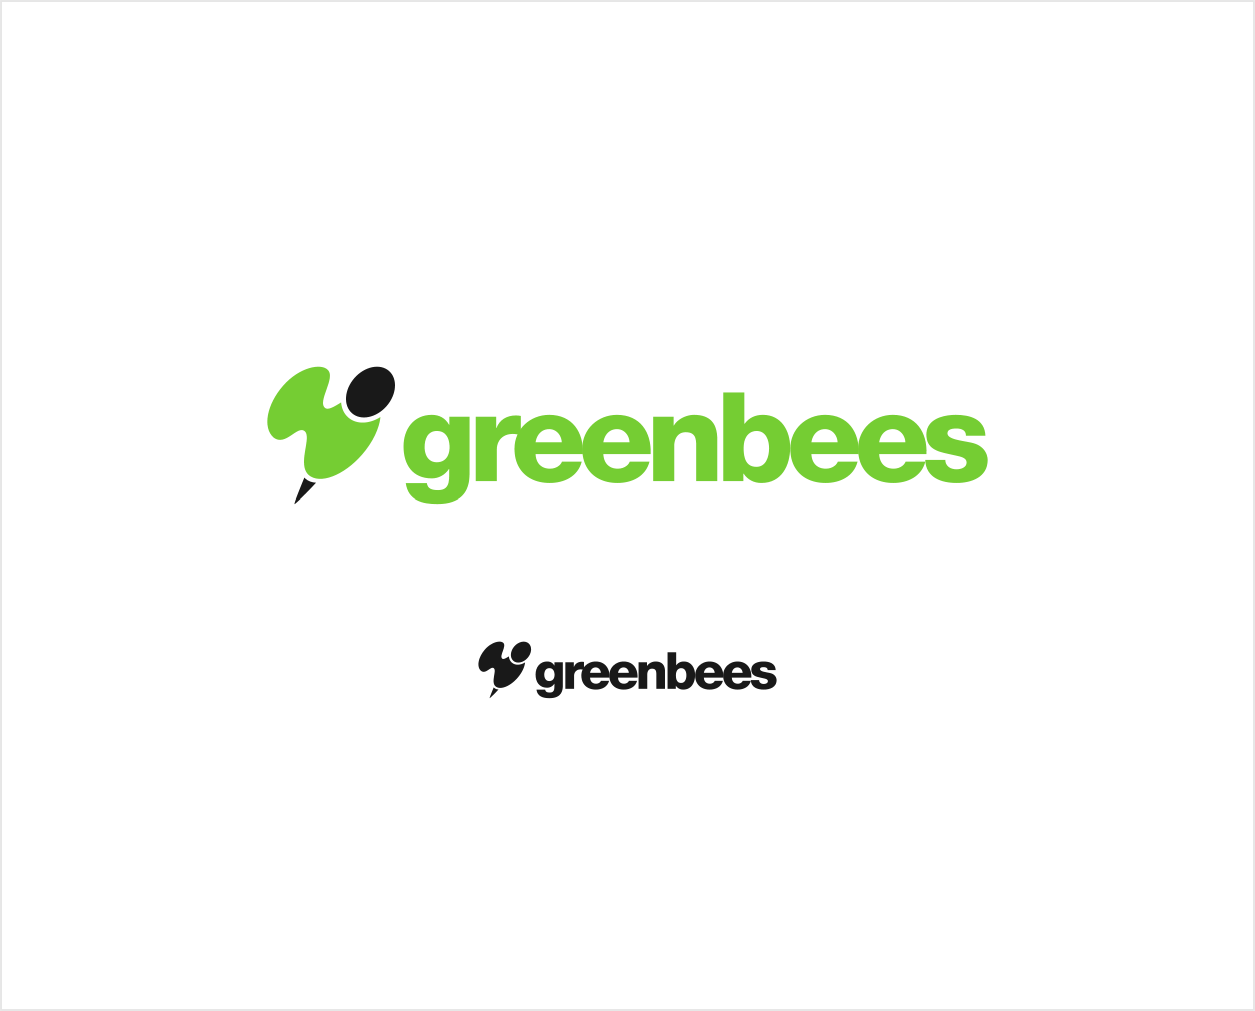 Logo Design by Jorge Sardon - Entry No. 259 in the Logo Design Contest Greenbees Logo Design.